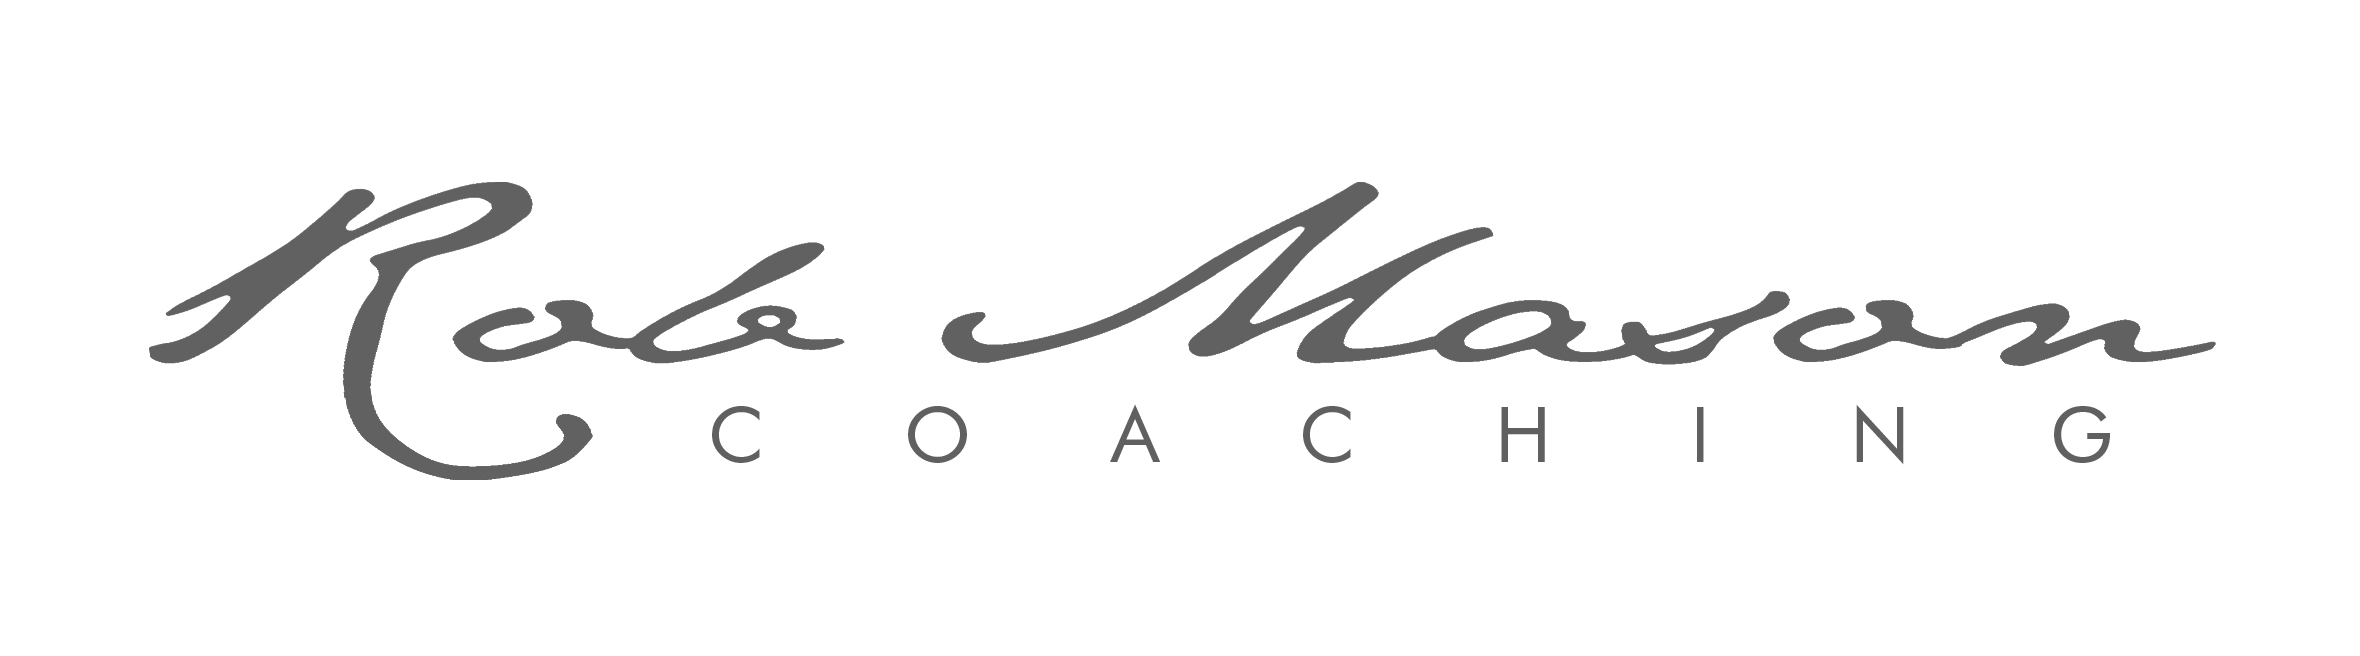 Logo Design by moidgreat - Entry No. 16 in the Logo Design Contest New Logo Design Needed for Exciting Company Rob Mason Coaching.